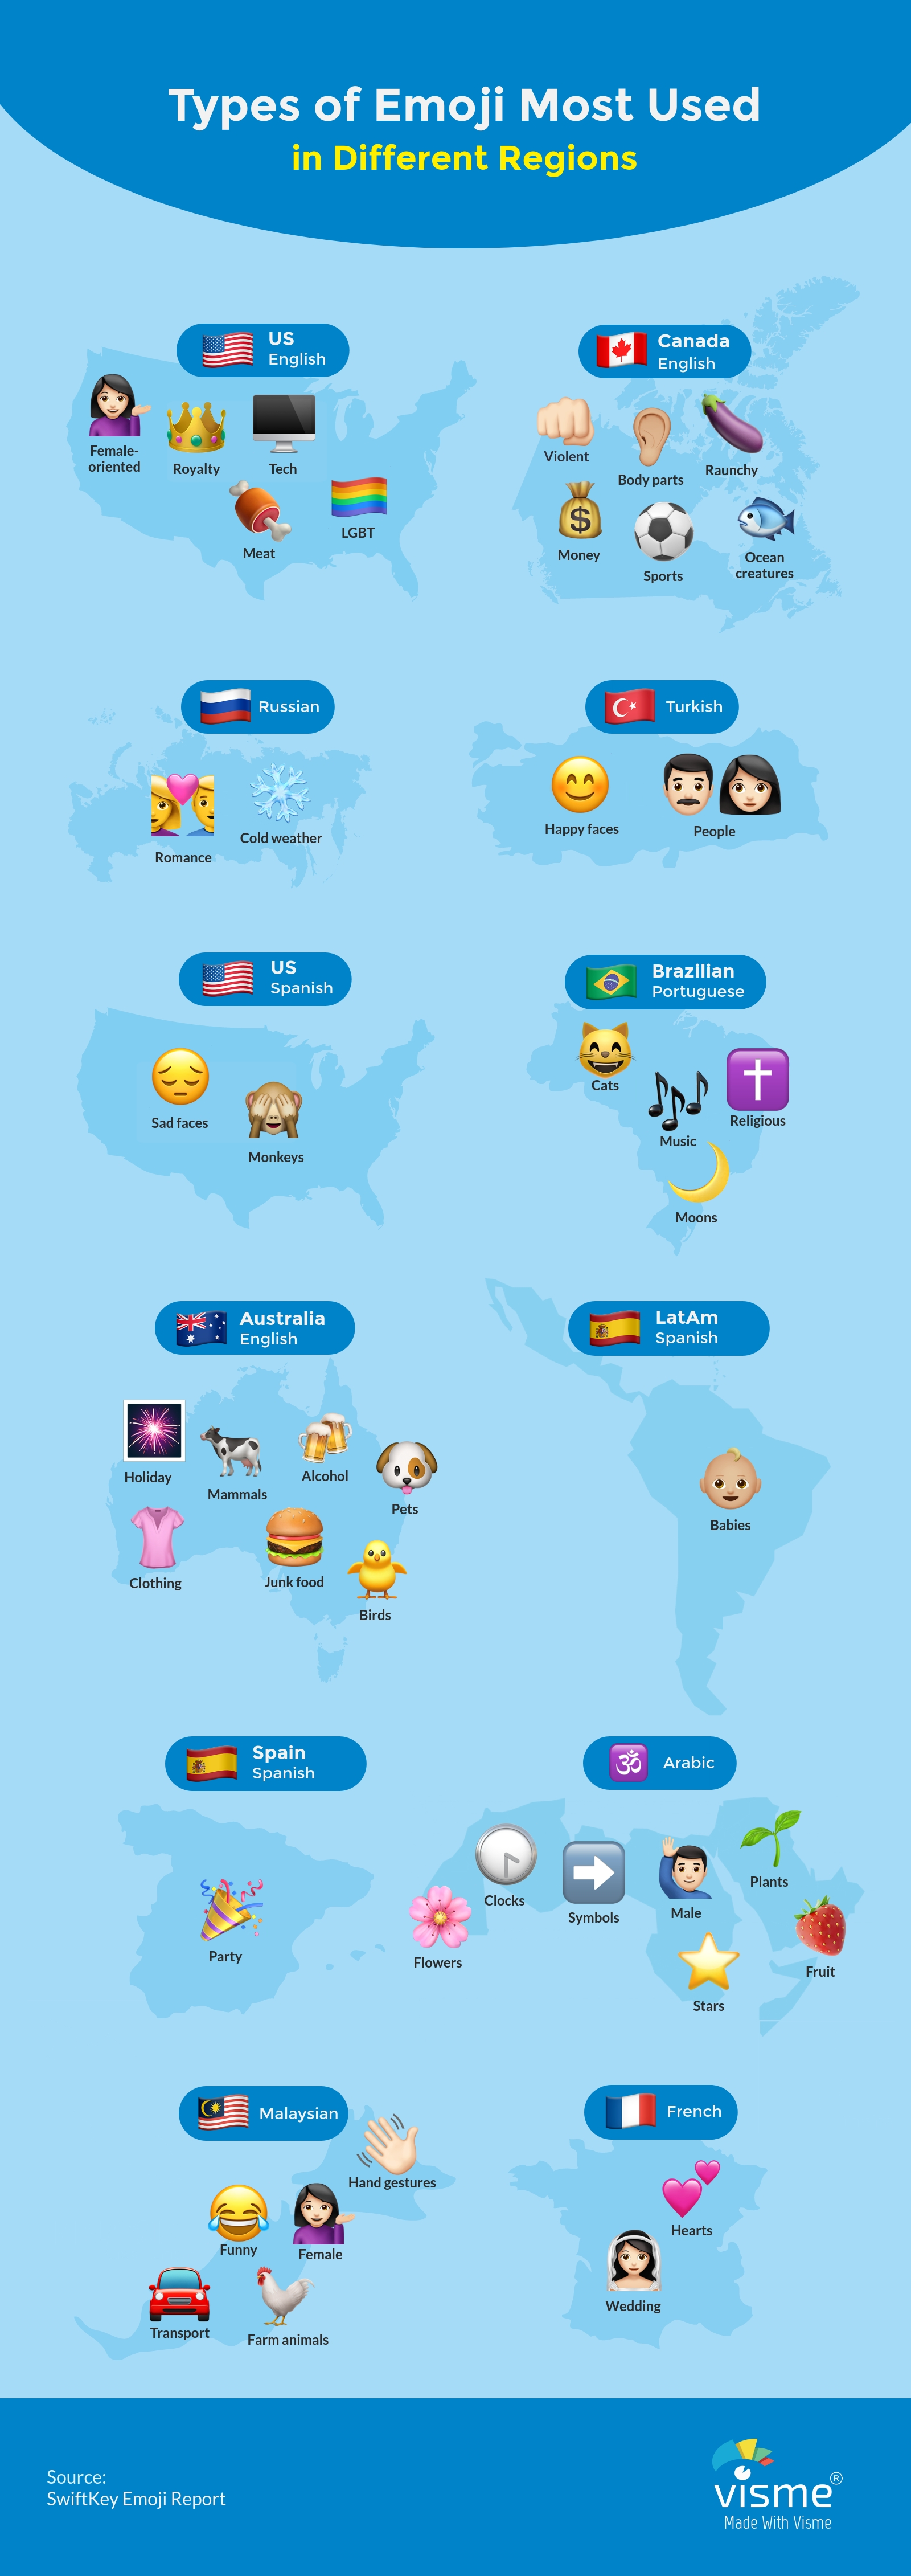 Types-of-Emojis-Most-Used-in-Different-Regions